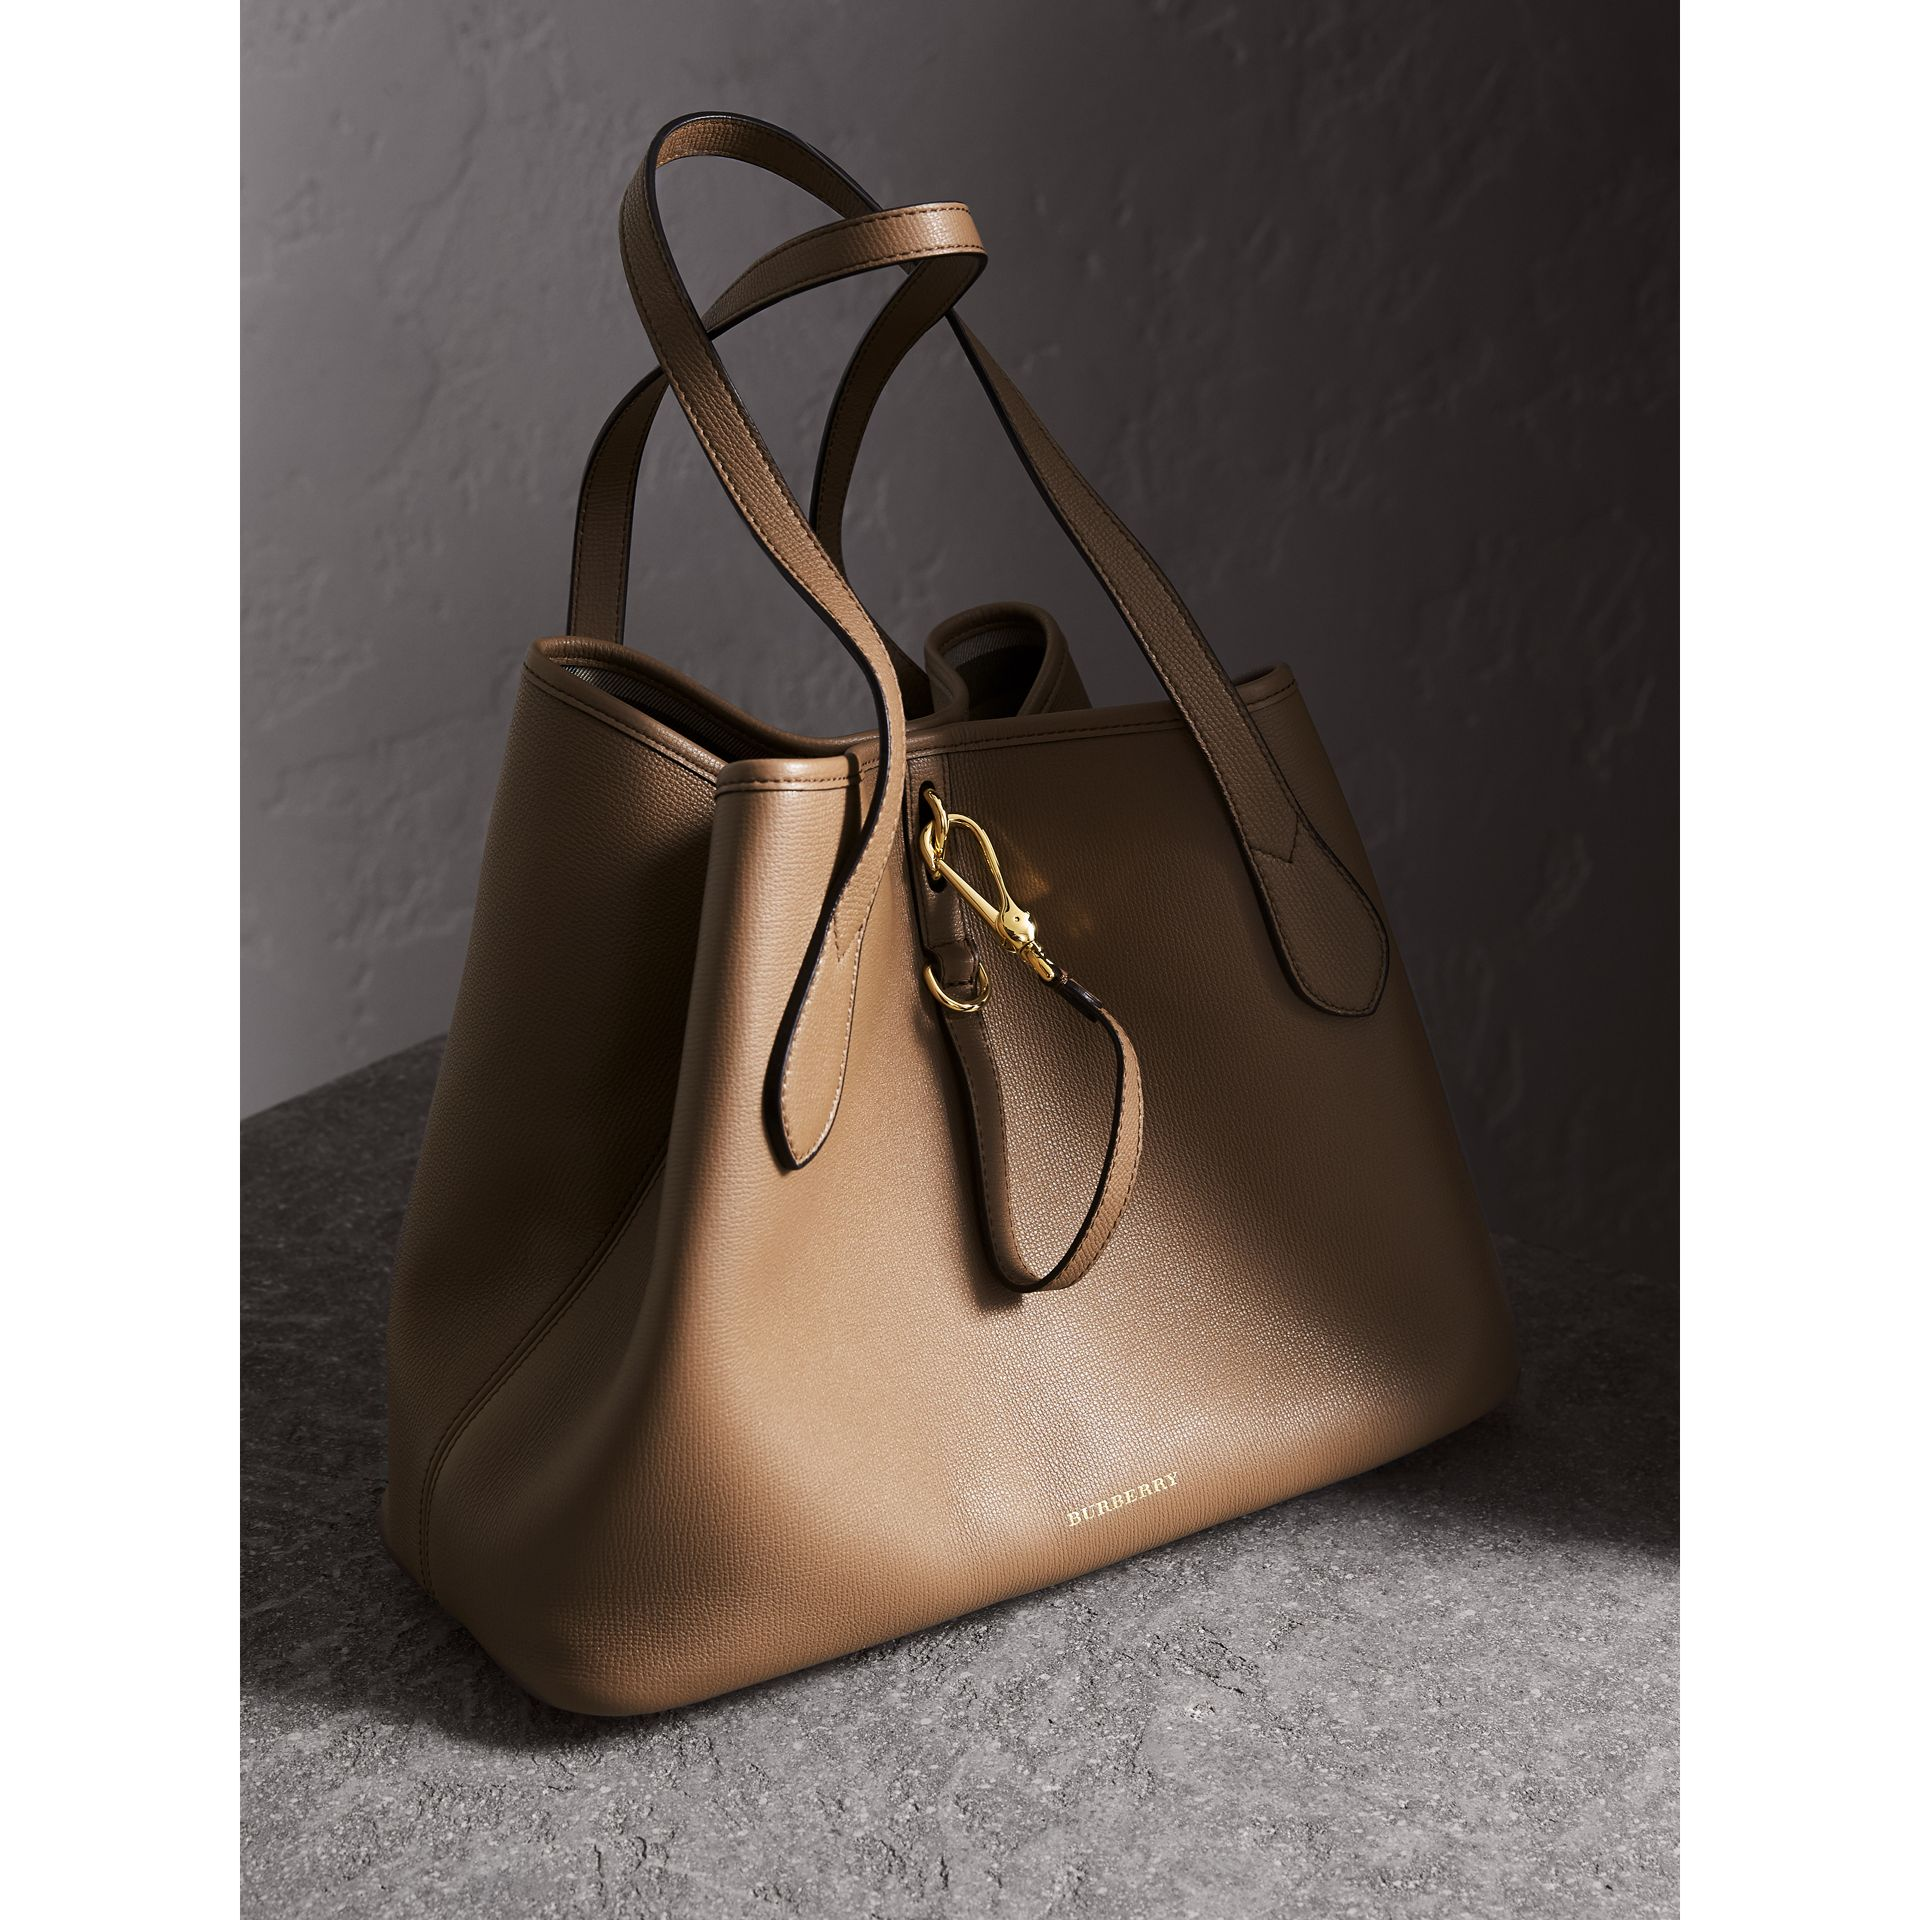 Medium Grainy Leather Tote Bag in Dark Sand - Women | Burberry - gallery image 6